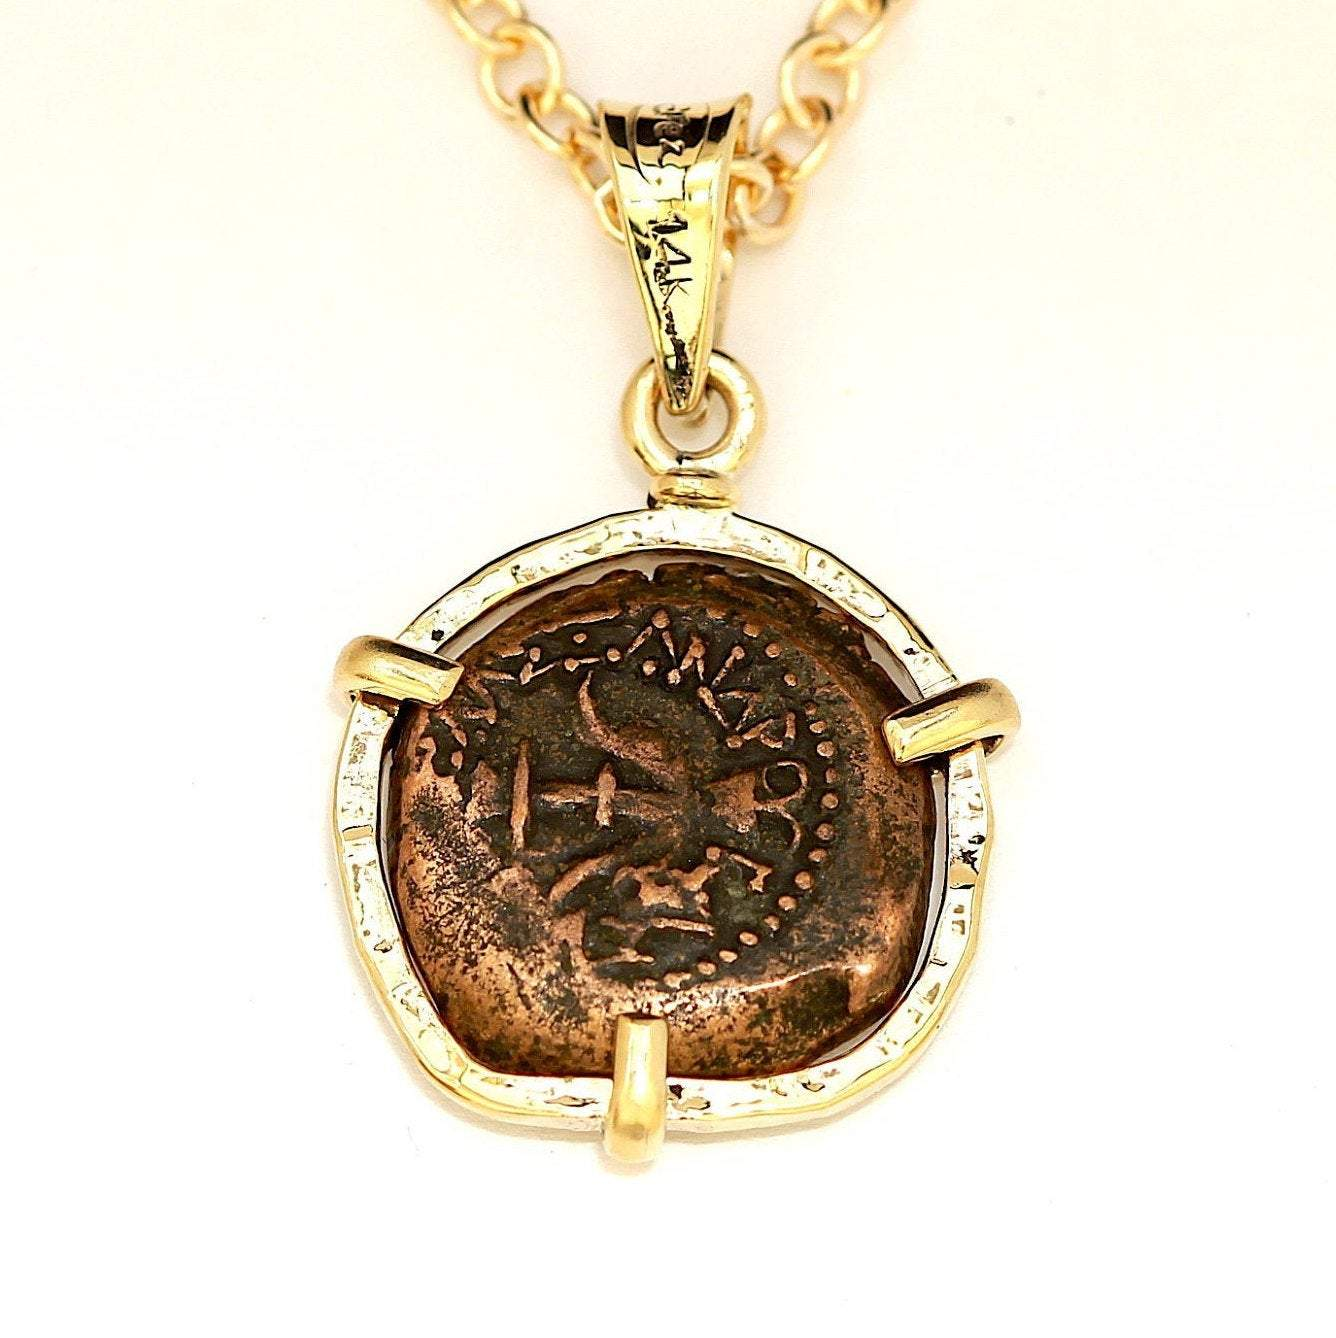 Widows Mite Coin, 14K Gold Pendant, Genuine Ancient Coin, with Certificate 6600 - Erez Ancient Coin Jewelry